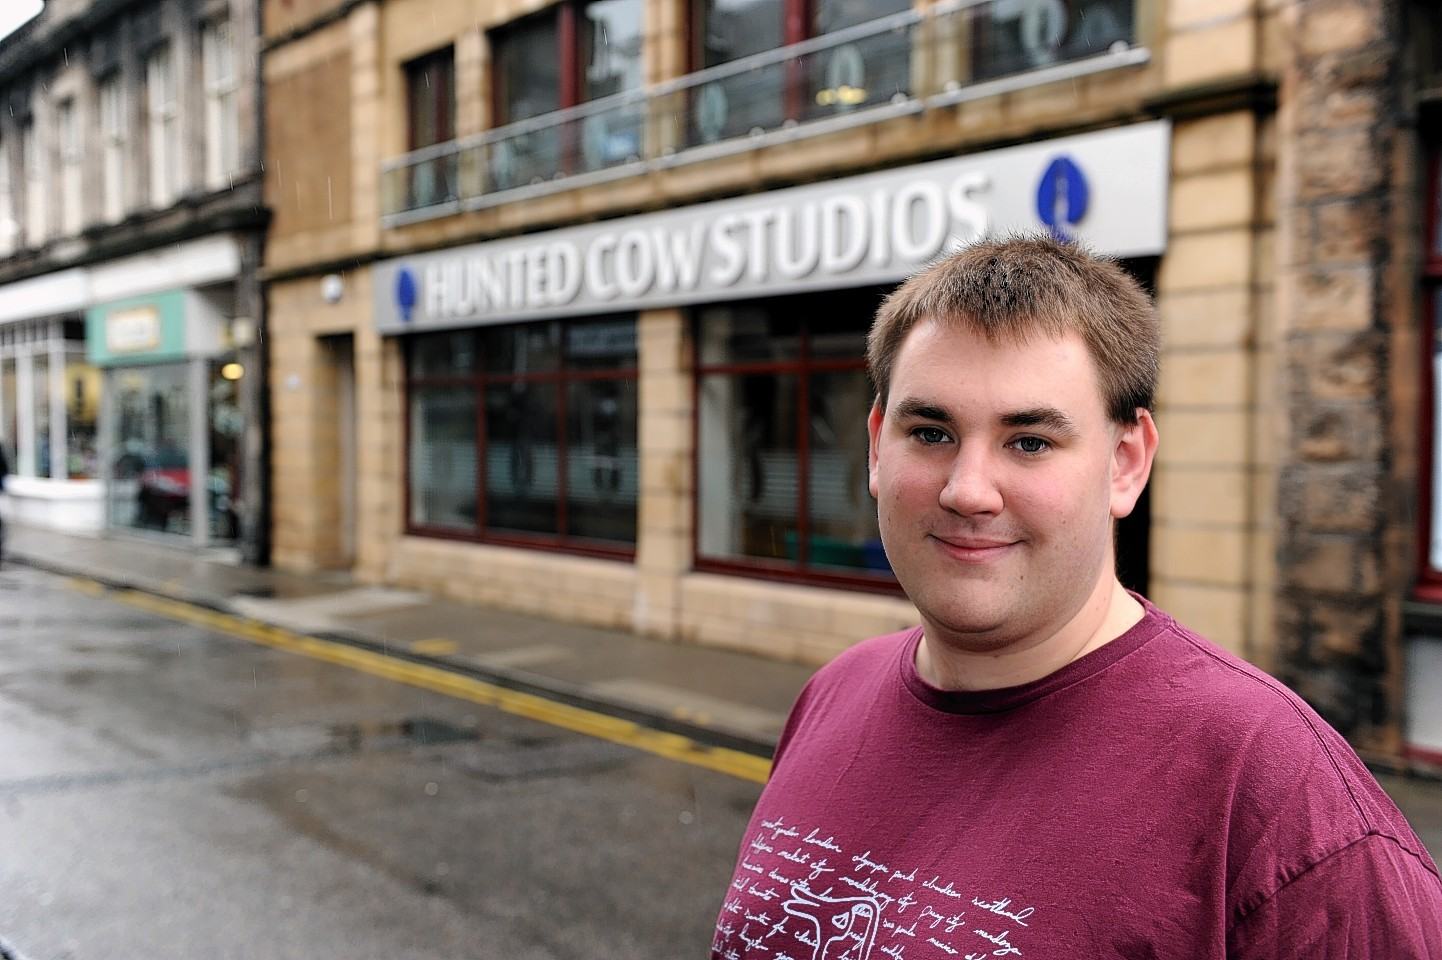 Hunted Cow Studios produce and upload free-to-play online games and apps.